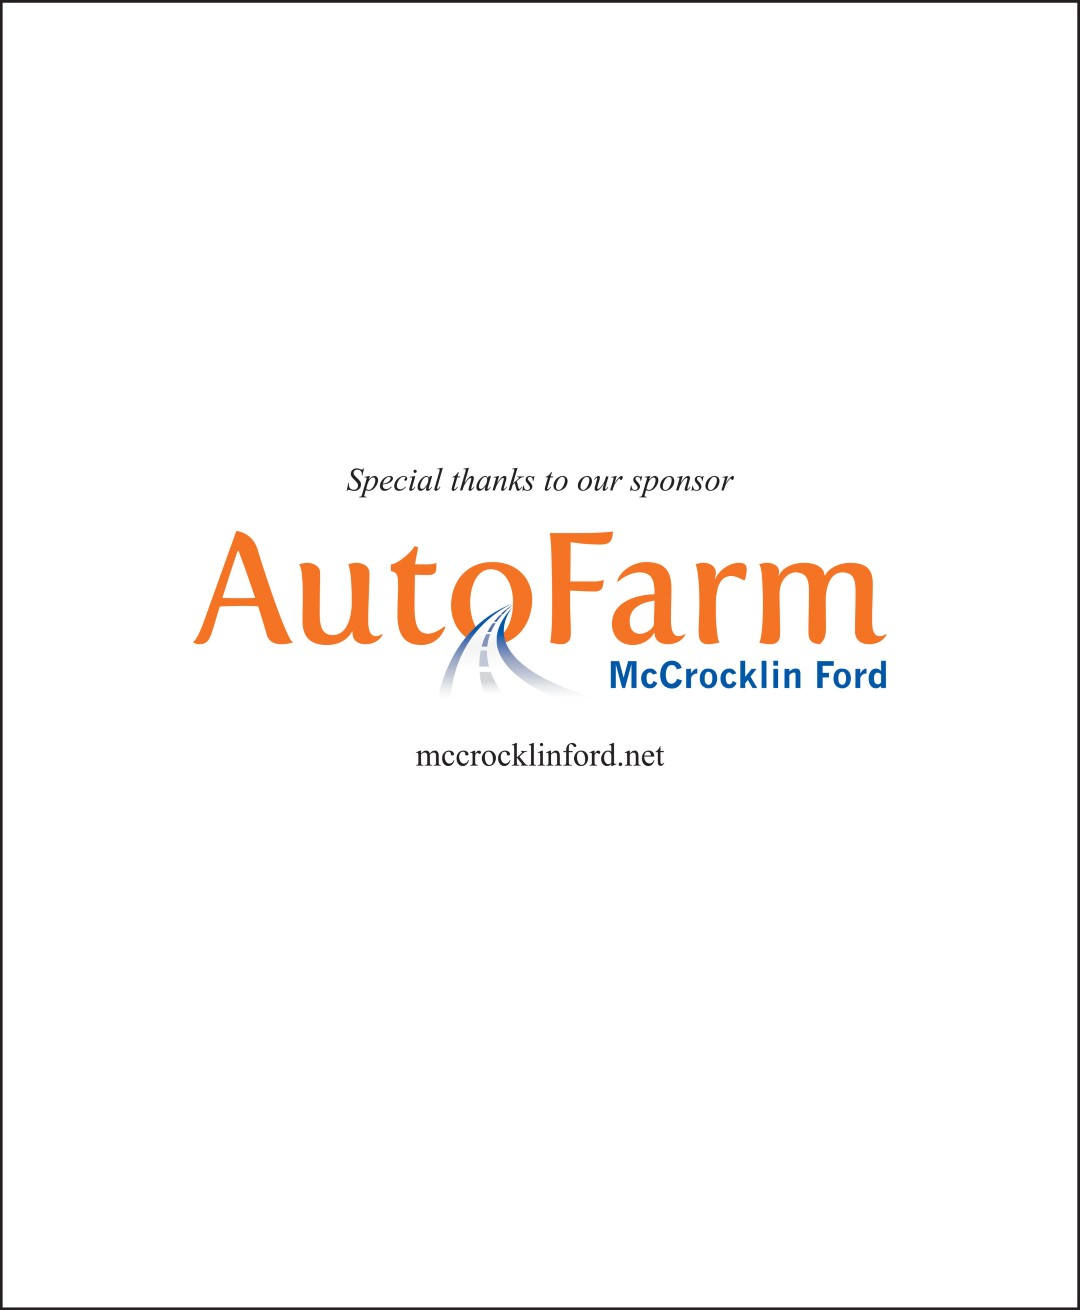 autofarm mccrocklin ford woof boom radio save and spend local online brochure autofarm mccrocklin ford woof boom radio save and spend local online brochure